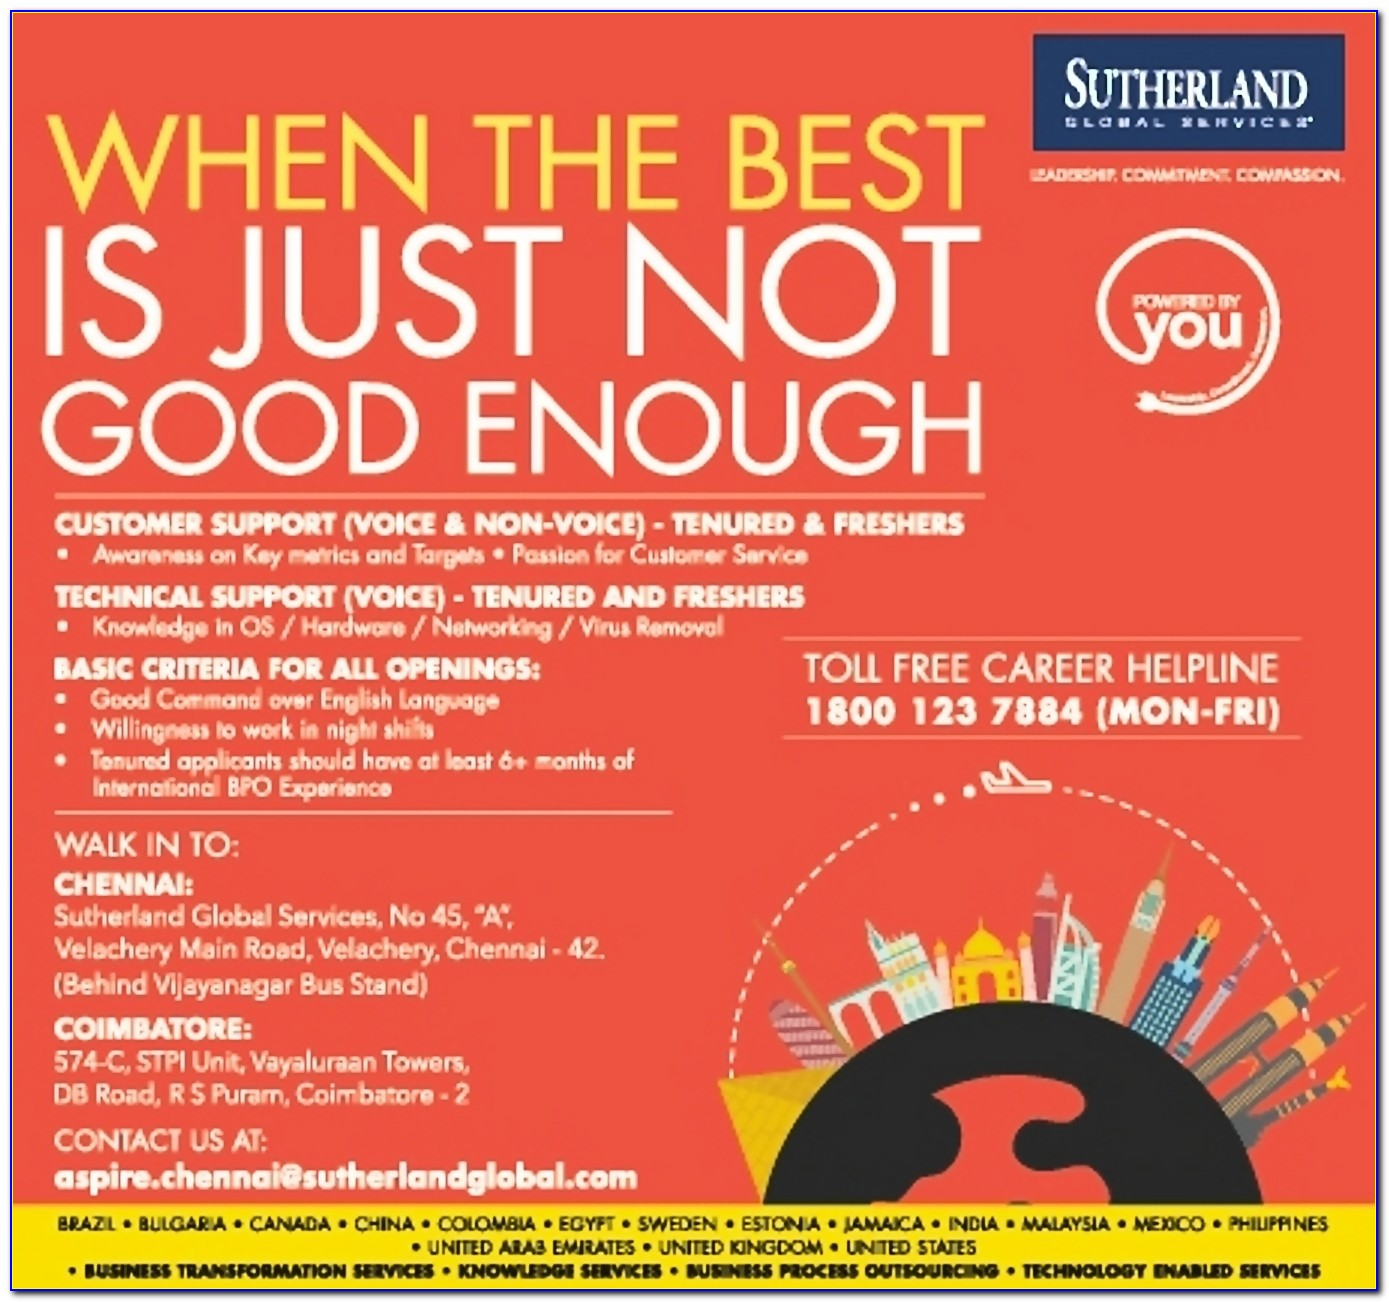 Sutherland Global Services Job Openings In Chennai